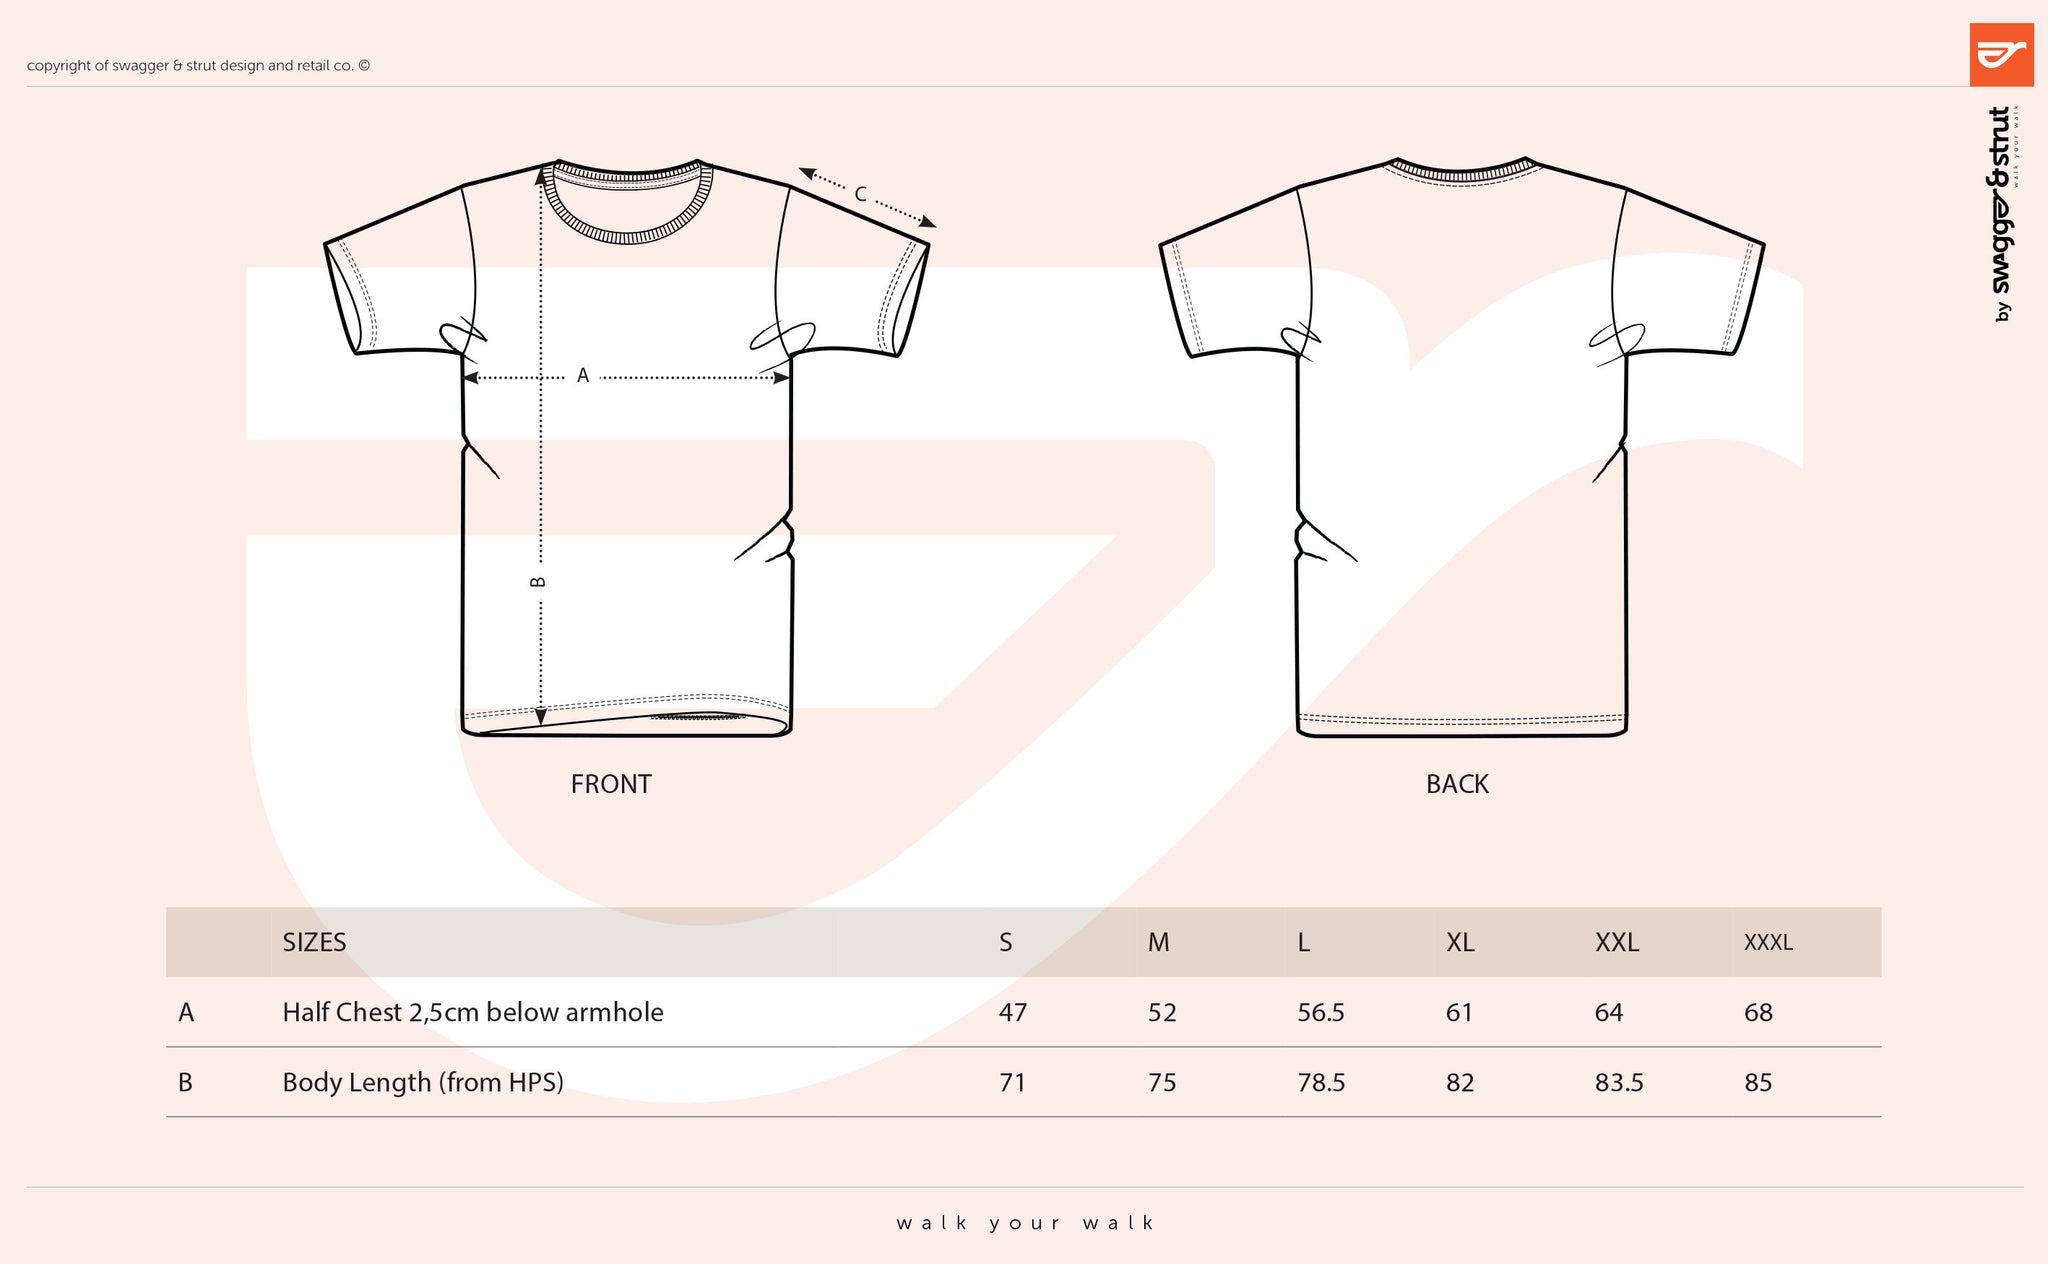 Our Standard Tee Size Chart Measurements Swagger Strut Apparel